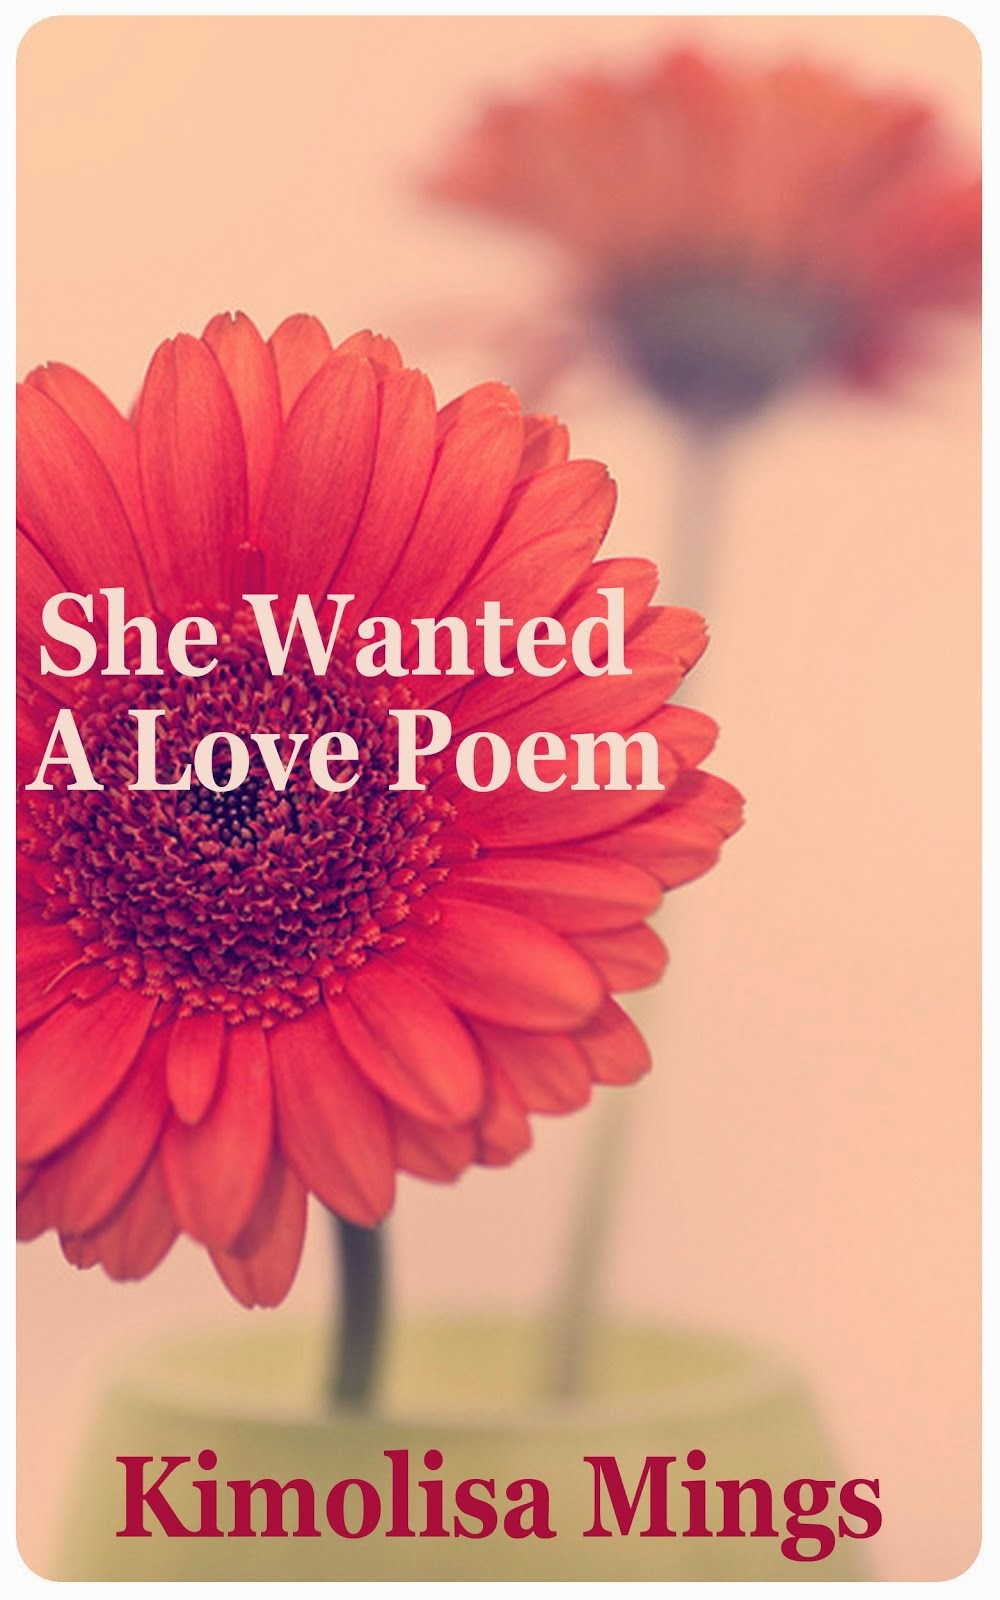 She Wanted A Love Poem